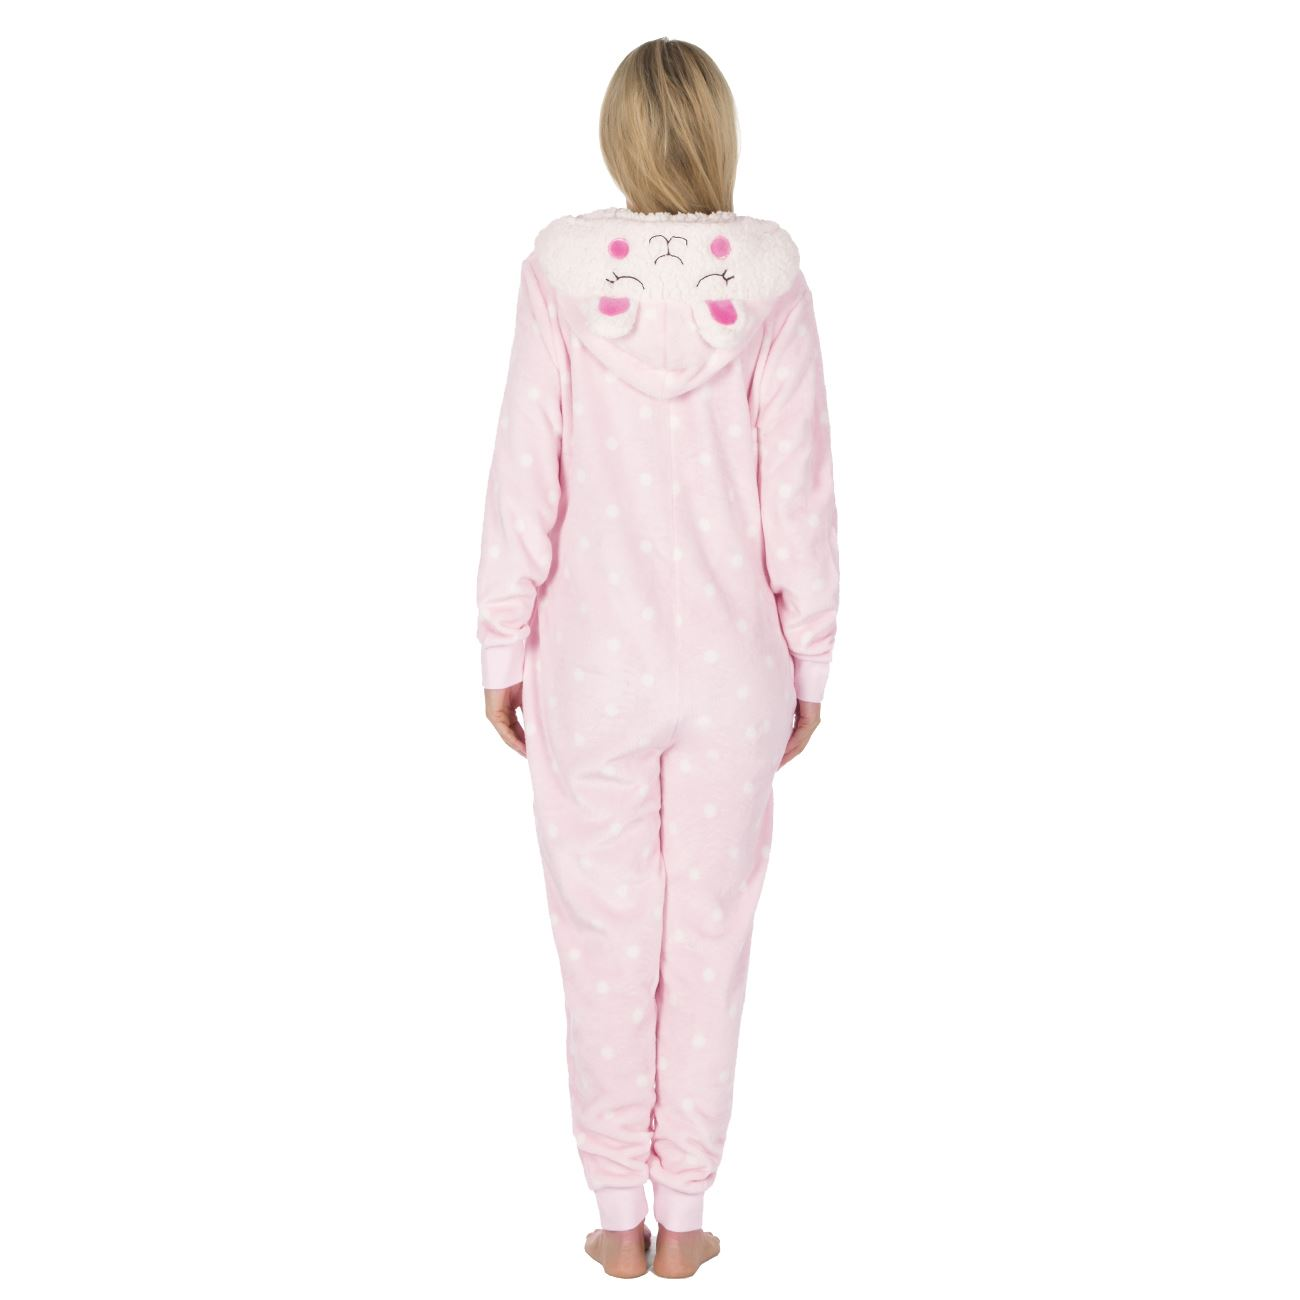 Ladies-Womens-Girls-Fleece-All-In-One-Pyjamas-Outfit-Jumpsuit-Costume-Size-6-18 thumbnail 35